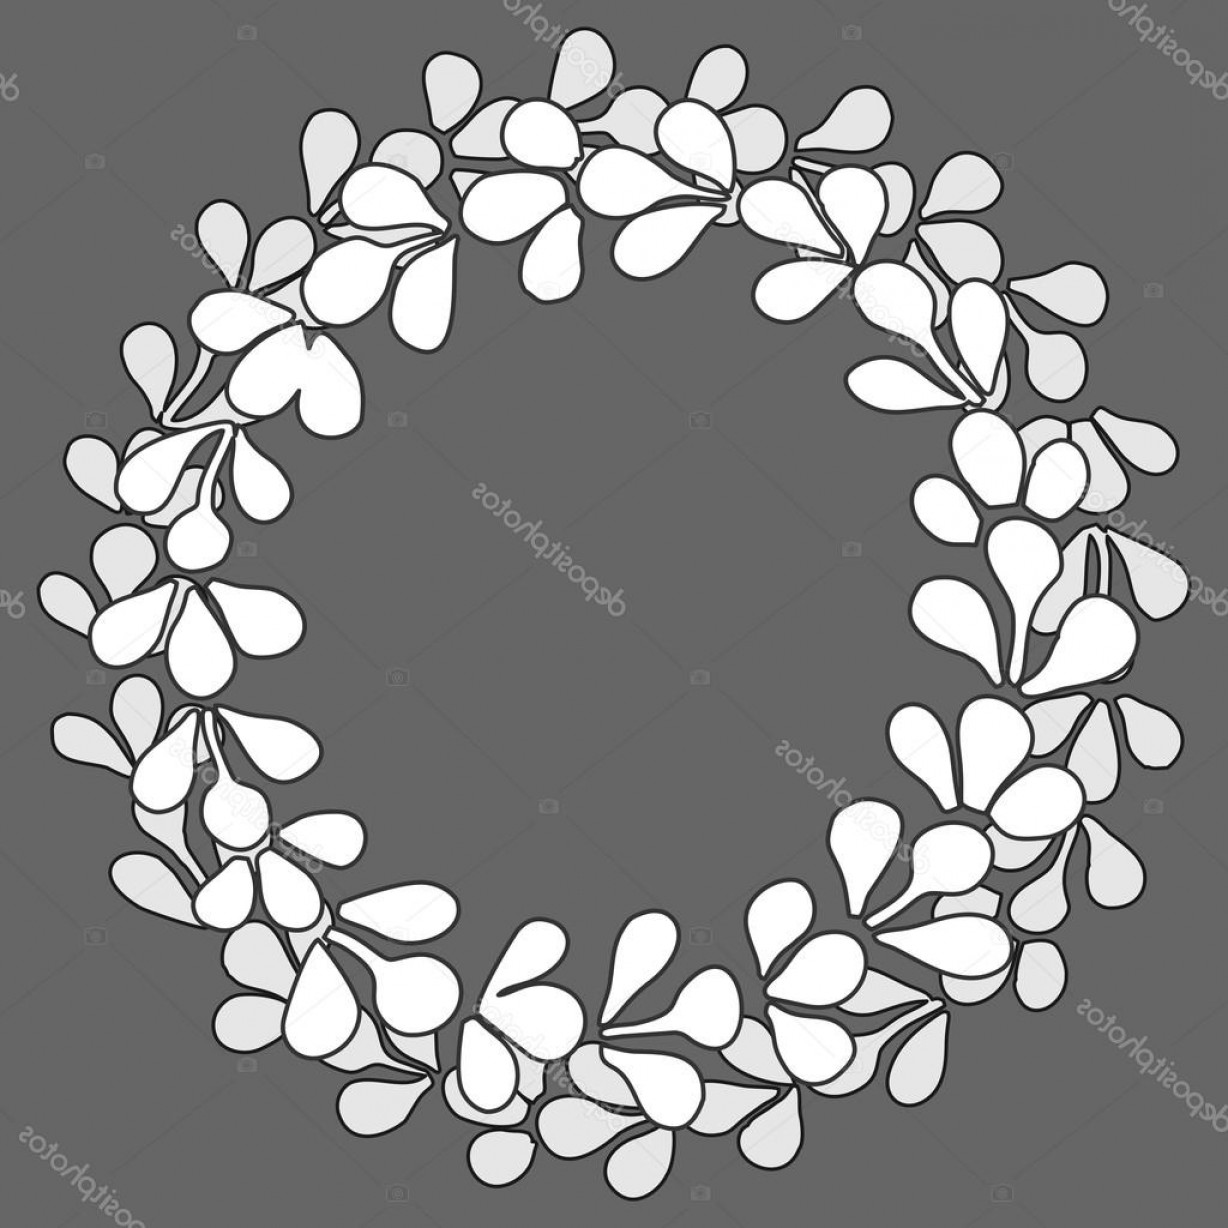 Floral Laurel Wreath Vector: Stock Illustration Grey And White Laurel Floral